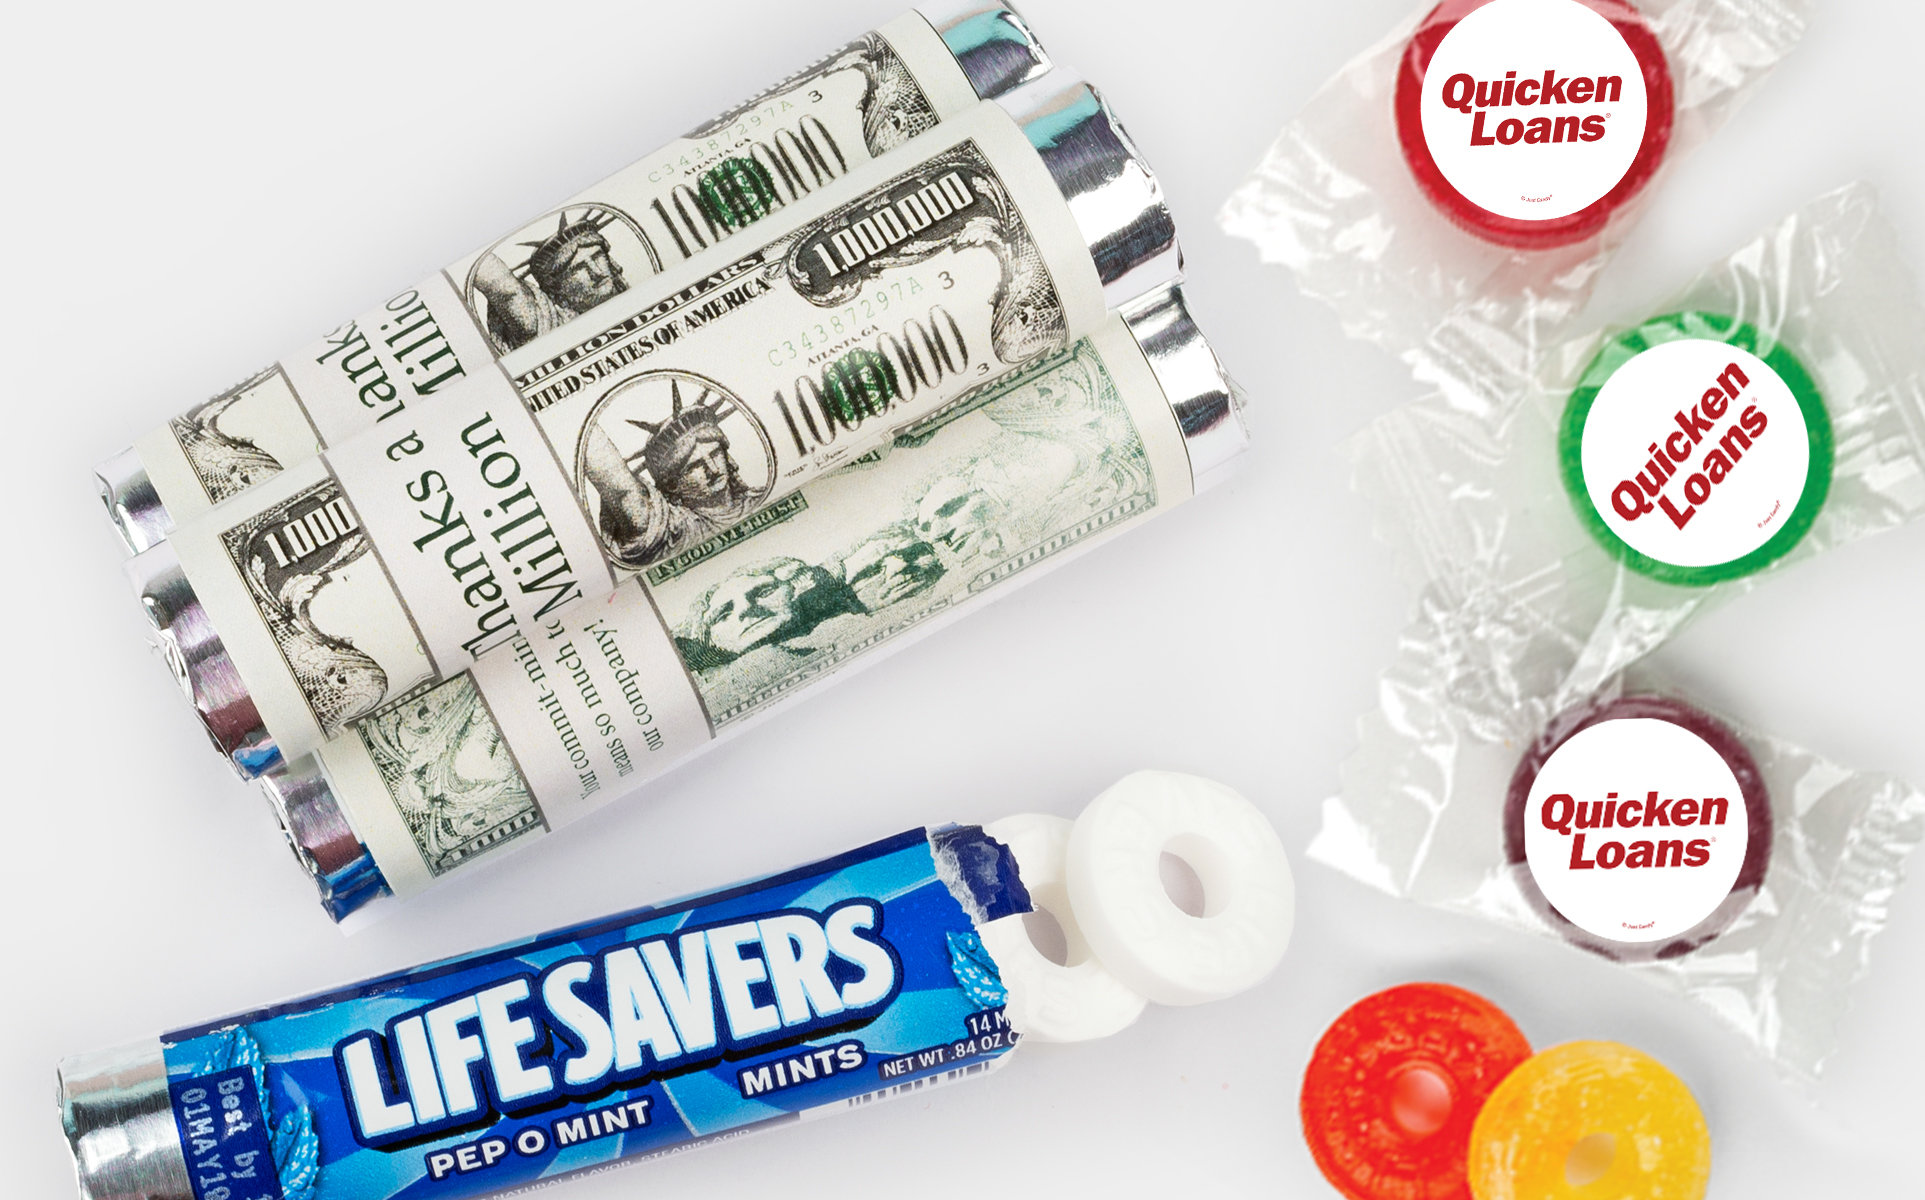 Lifesavers and Mints